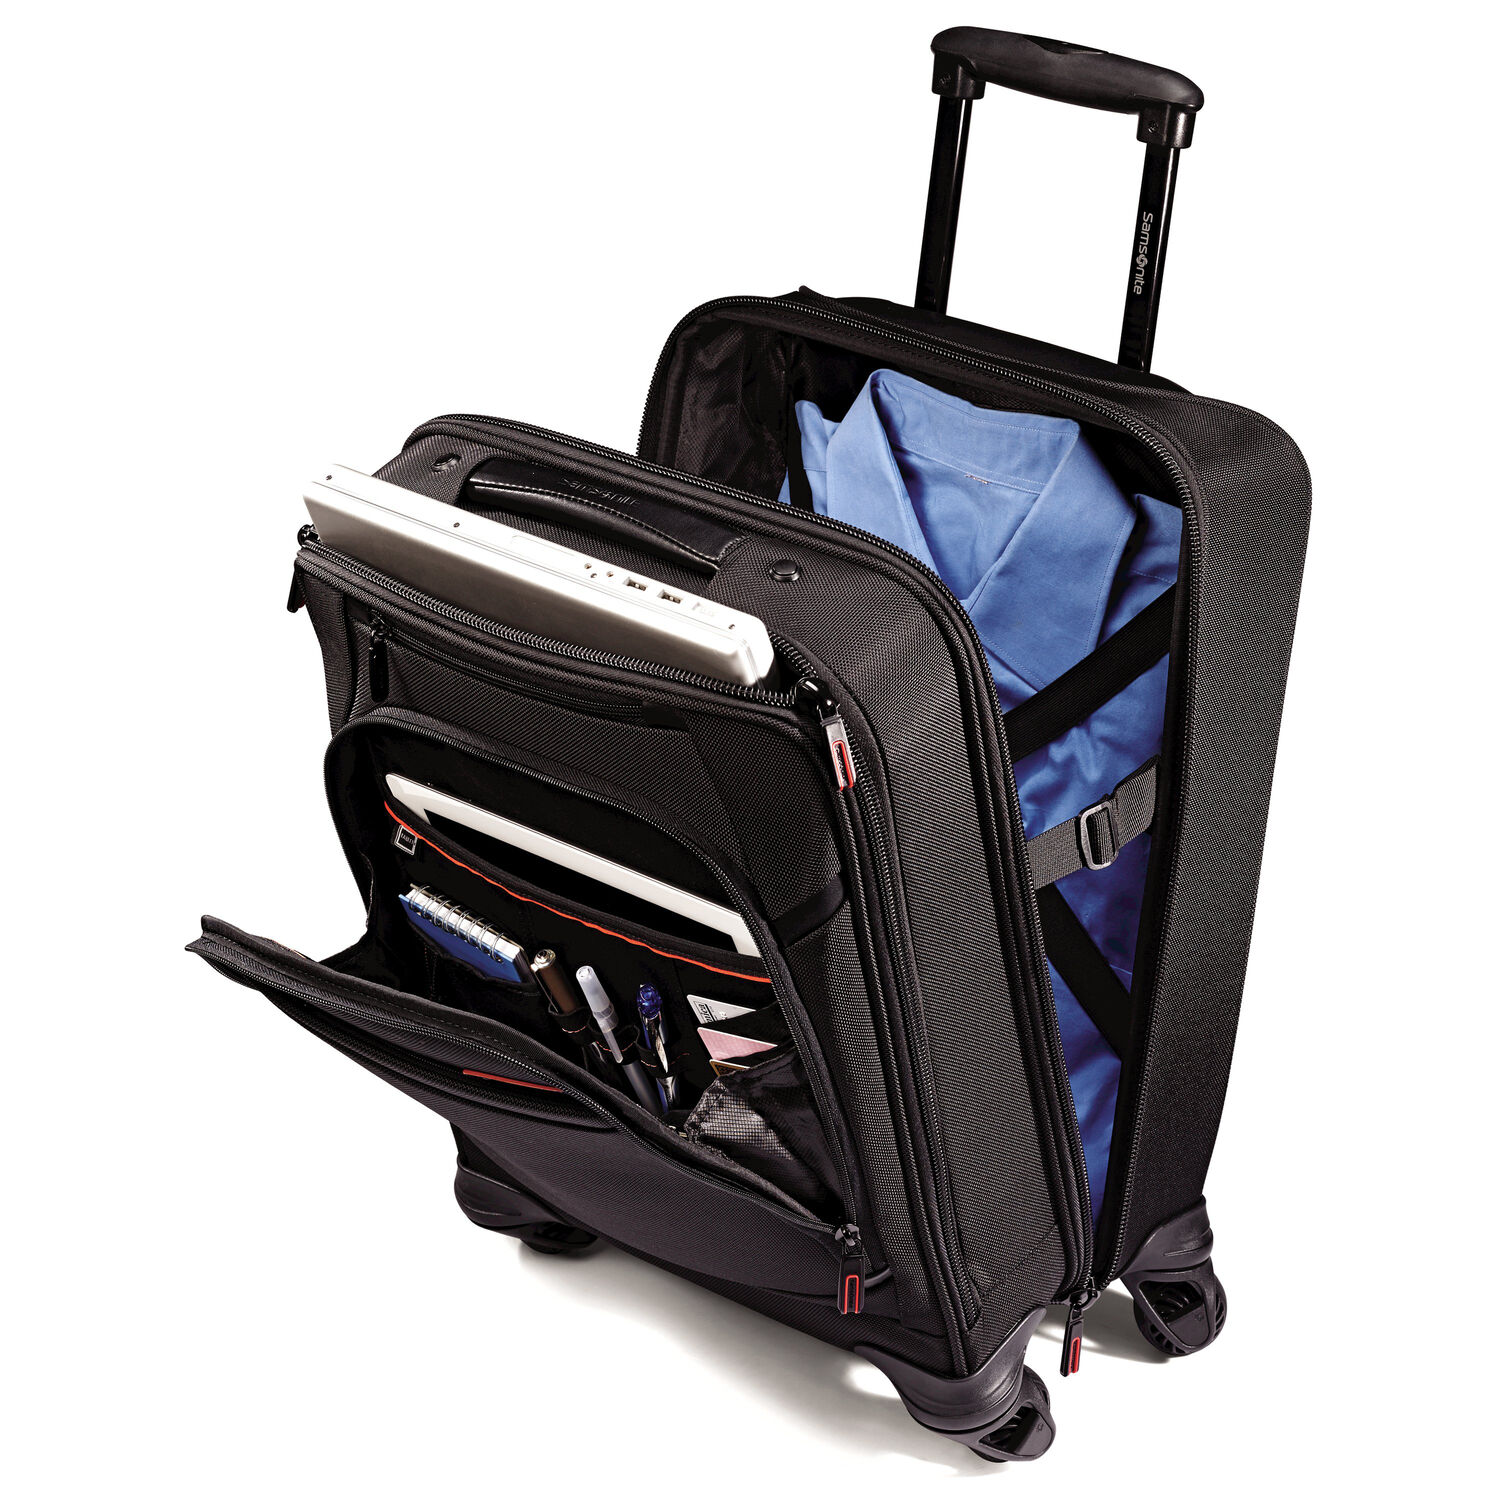 Samsonite Pro 4 Dlx Vertical Spinner Mobile Office In The Color Black